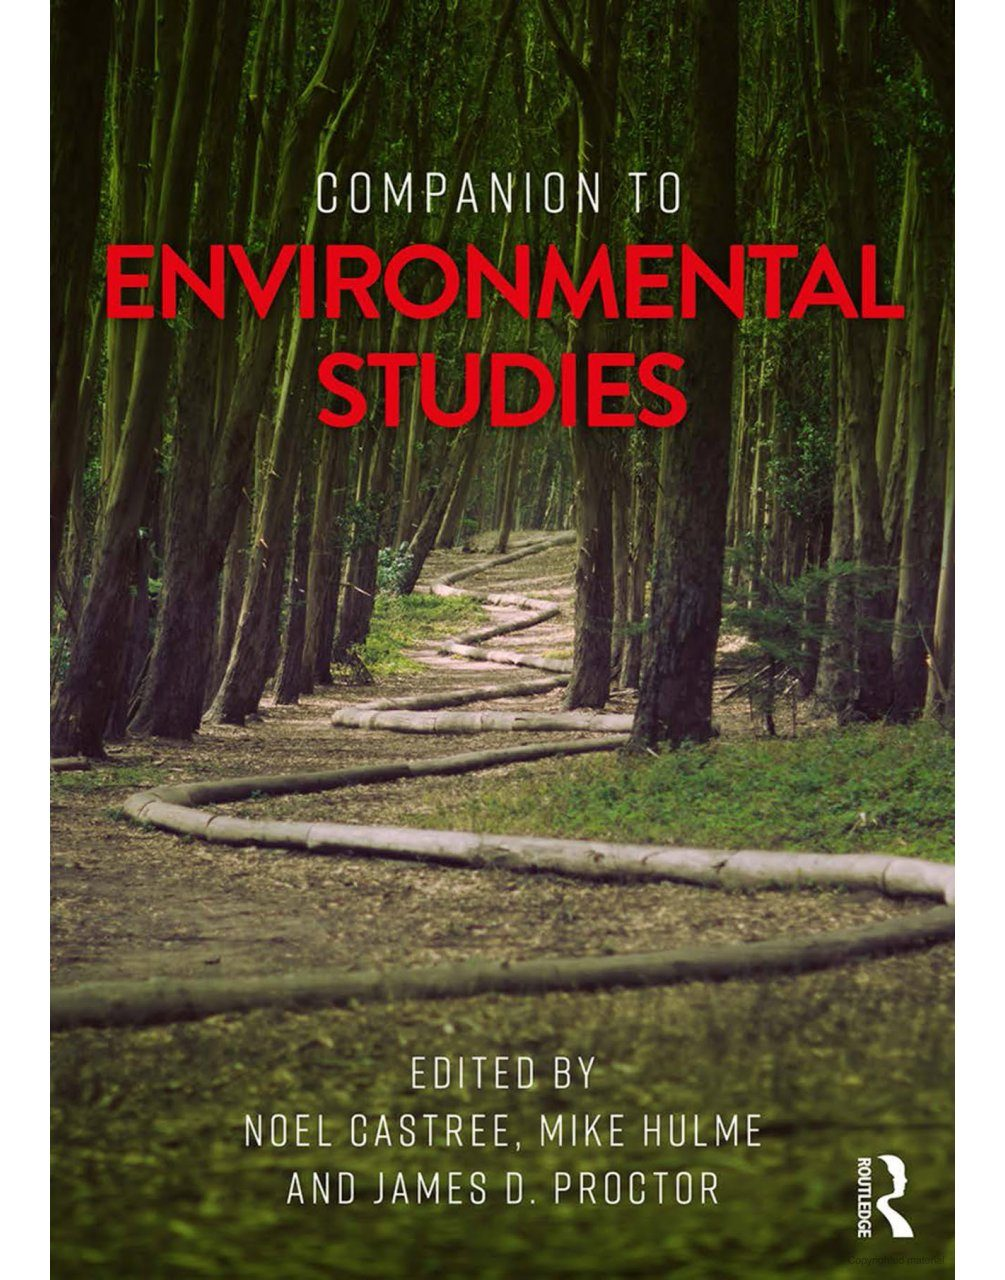 Companion to Environmental Studies